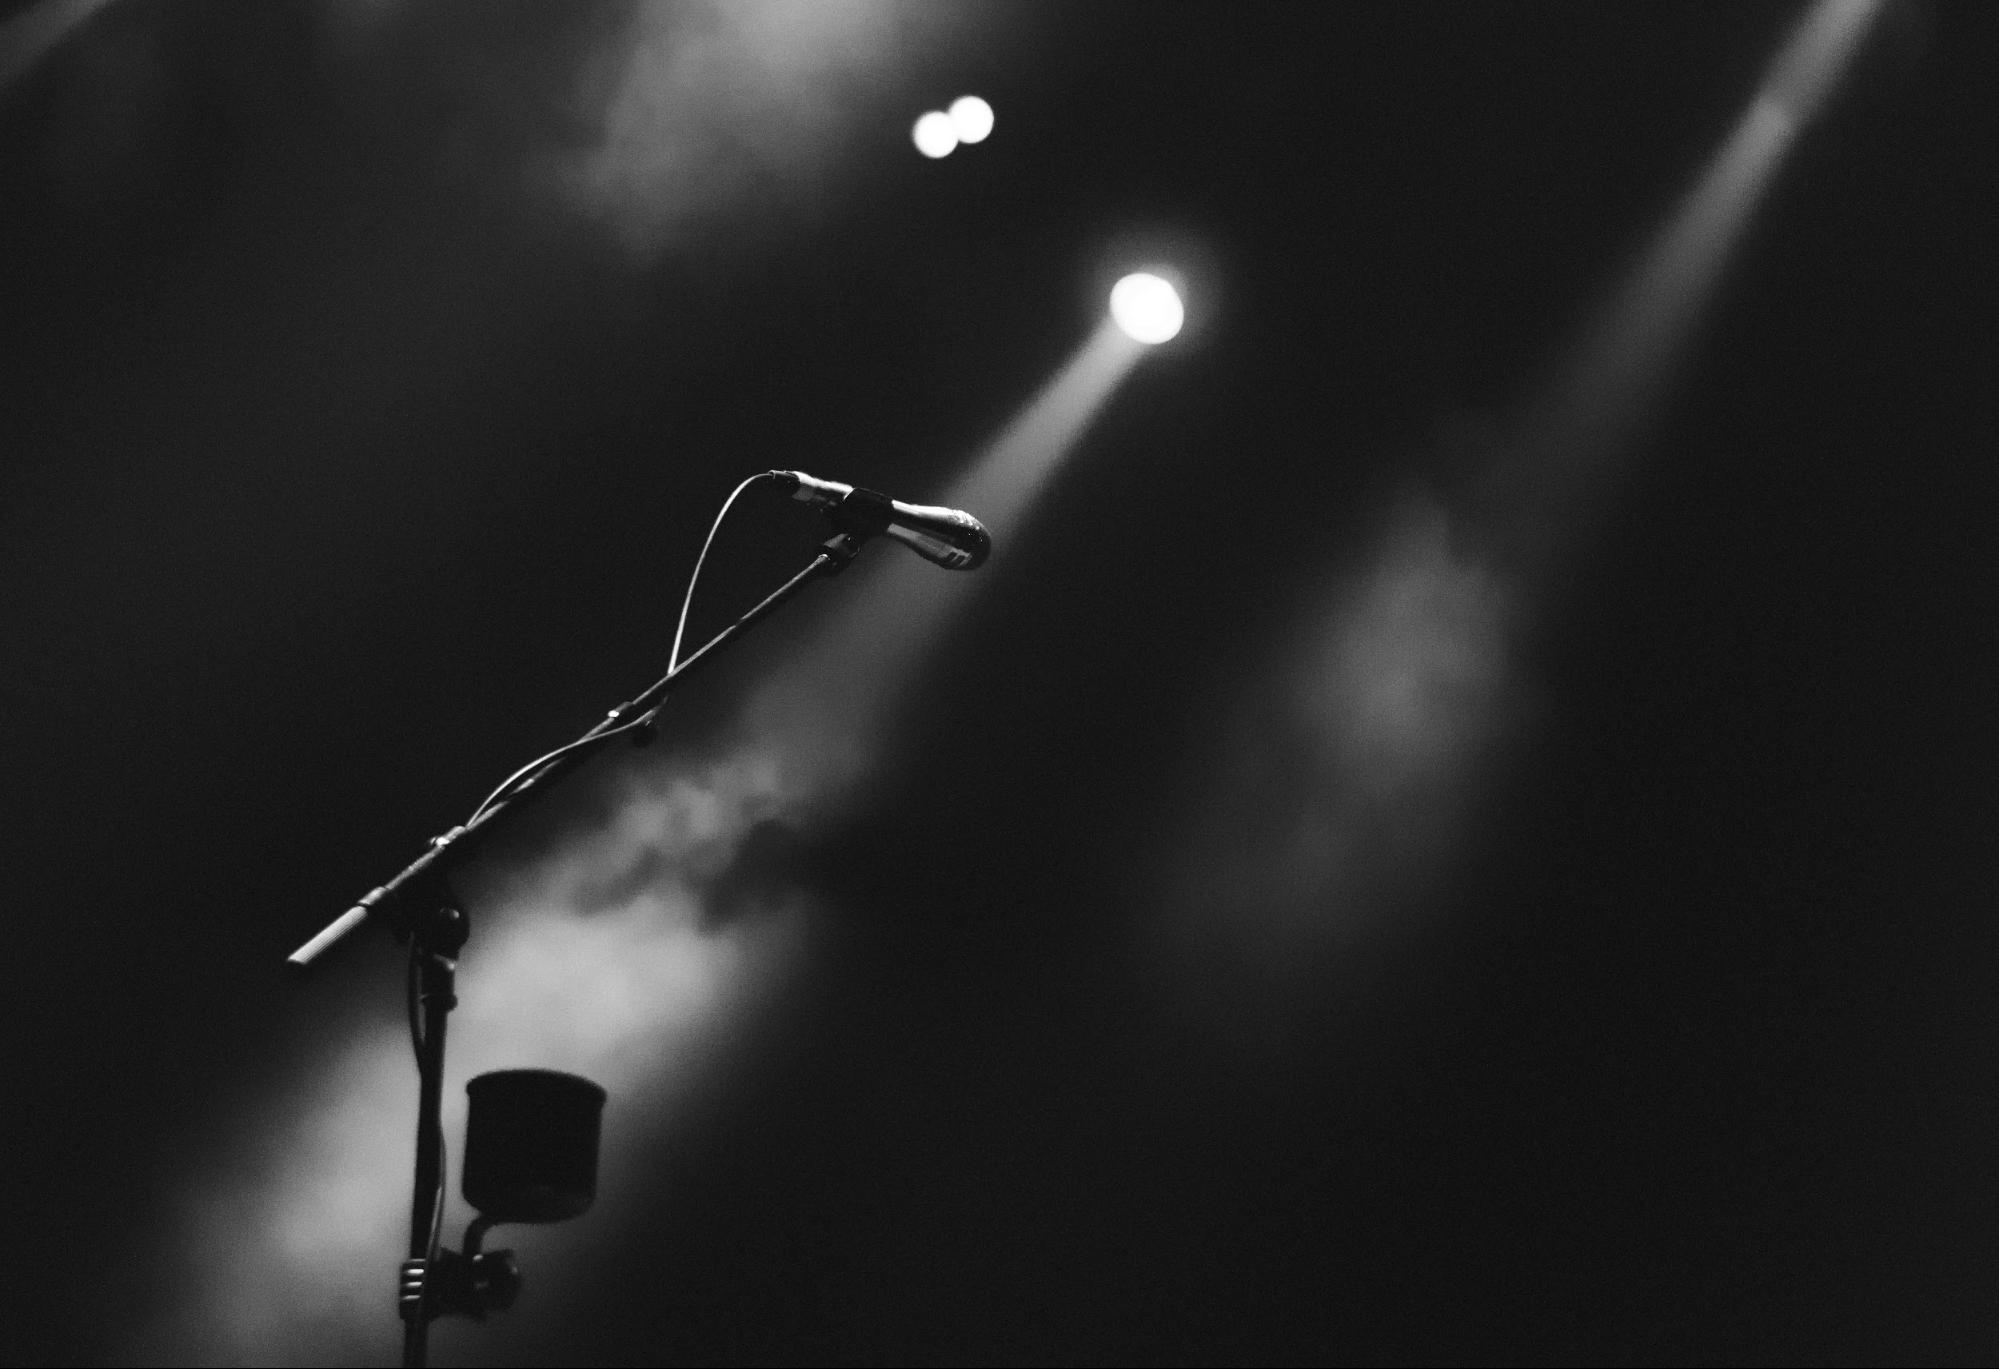 2 spotlight shining on a microphone in its stand on an empty stage.